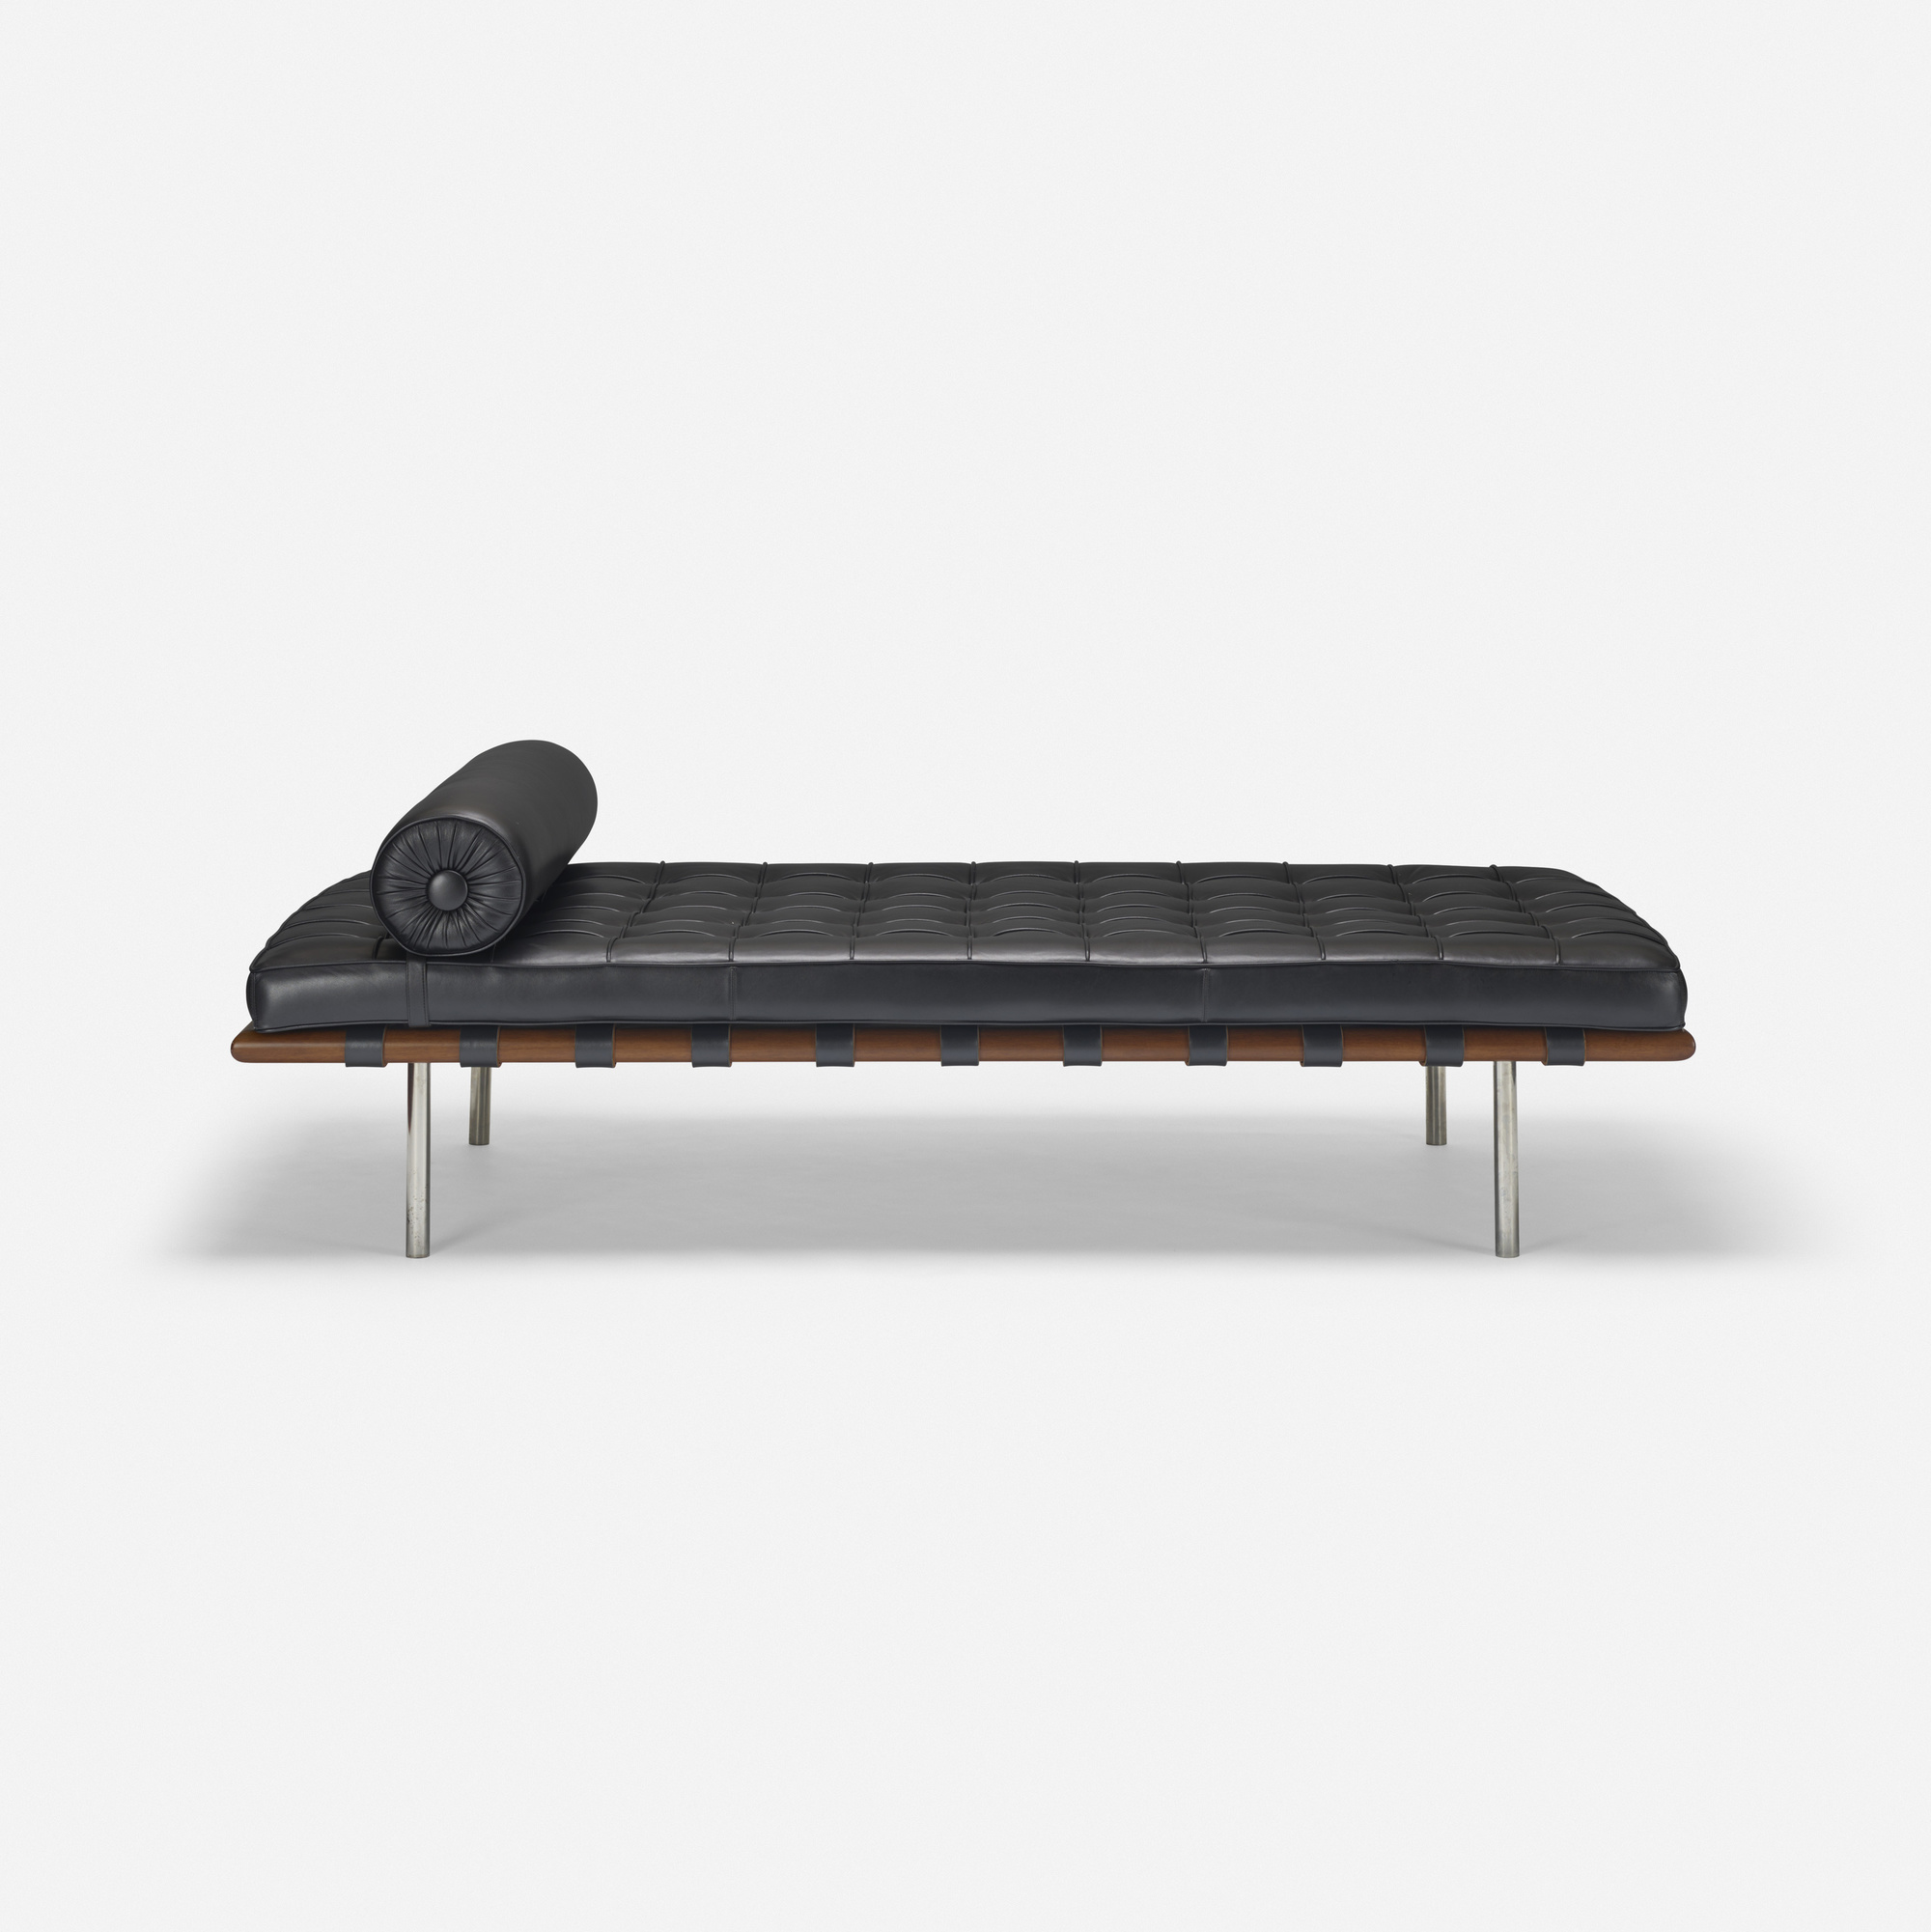 414: Ludwig Mies van der Rohe / Barcelona daybed (1 of 2)